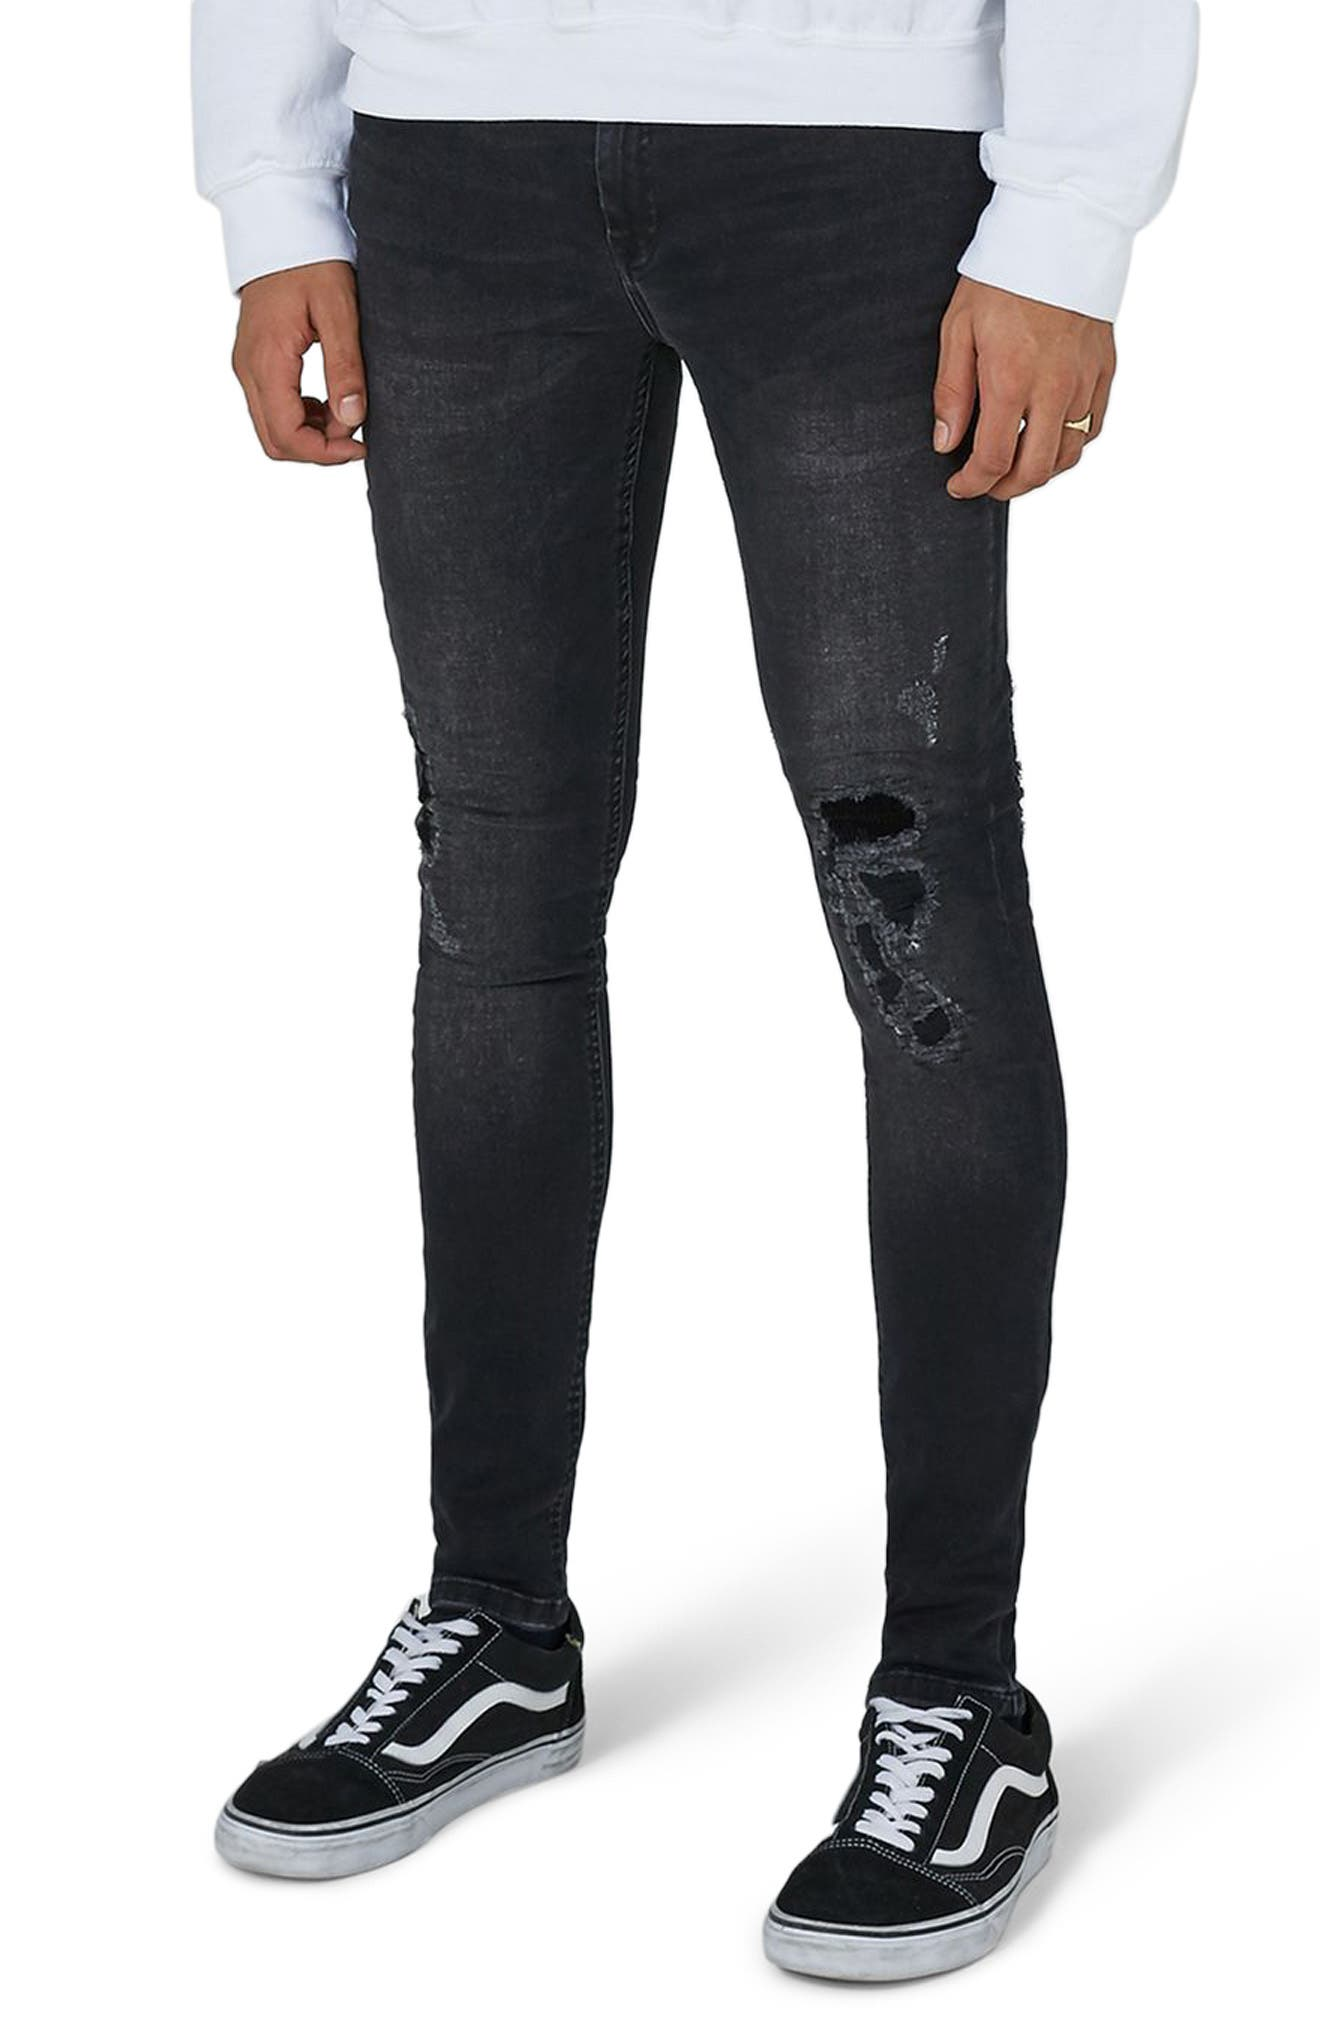 Repair Spray-On Skinny Fit Jeans,                         Main,                         color, Black